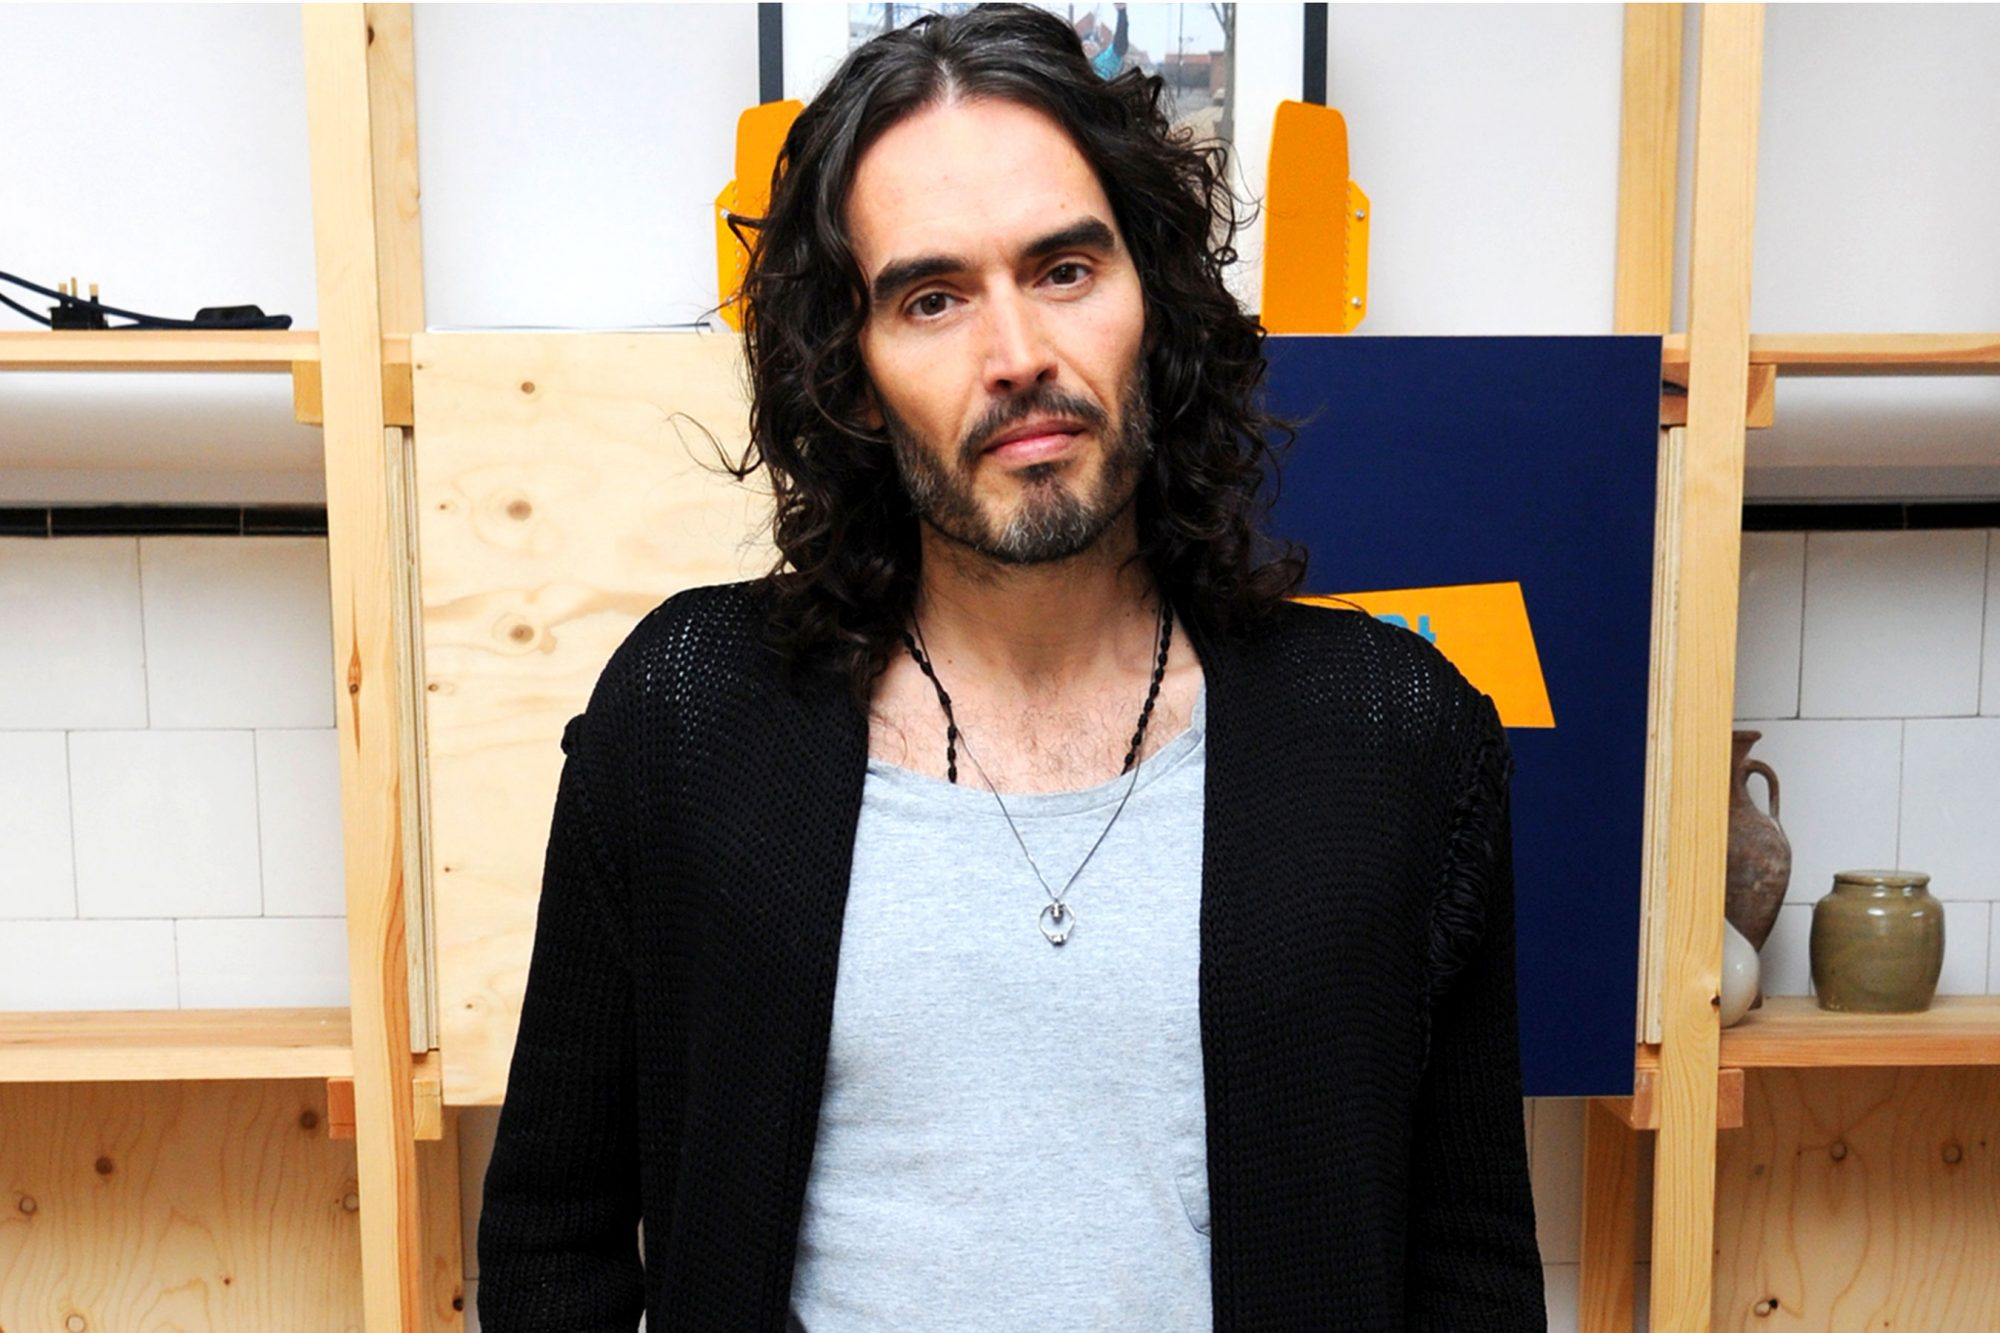 Russell Brand Launches RAPt's New Service For Addicts And Ex-Offenders